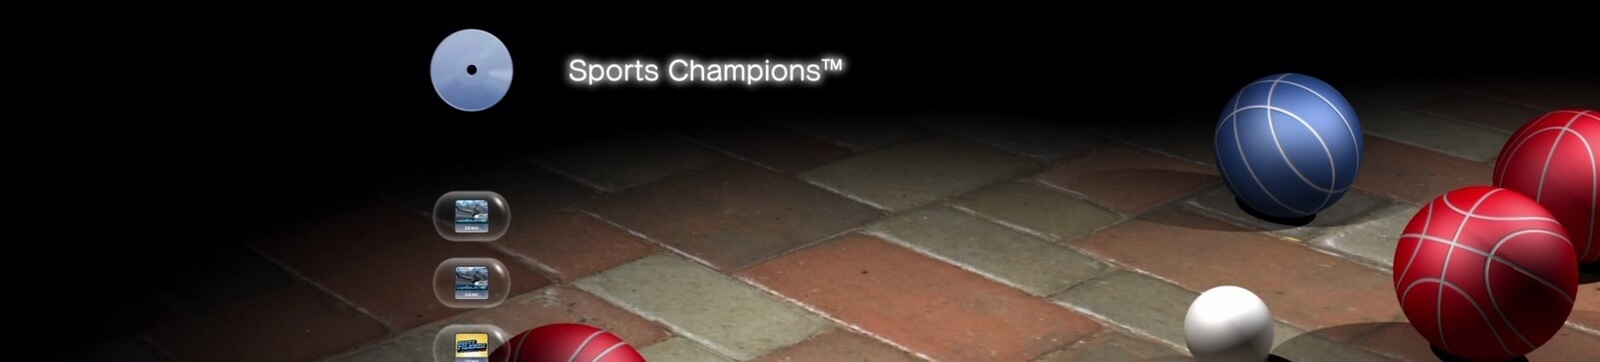 Sports Champions Bocce PS3 Move Hands On